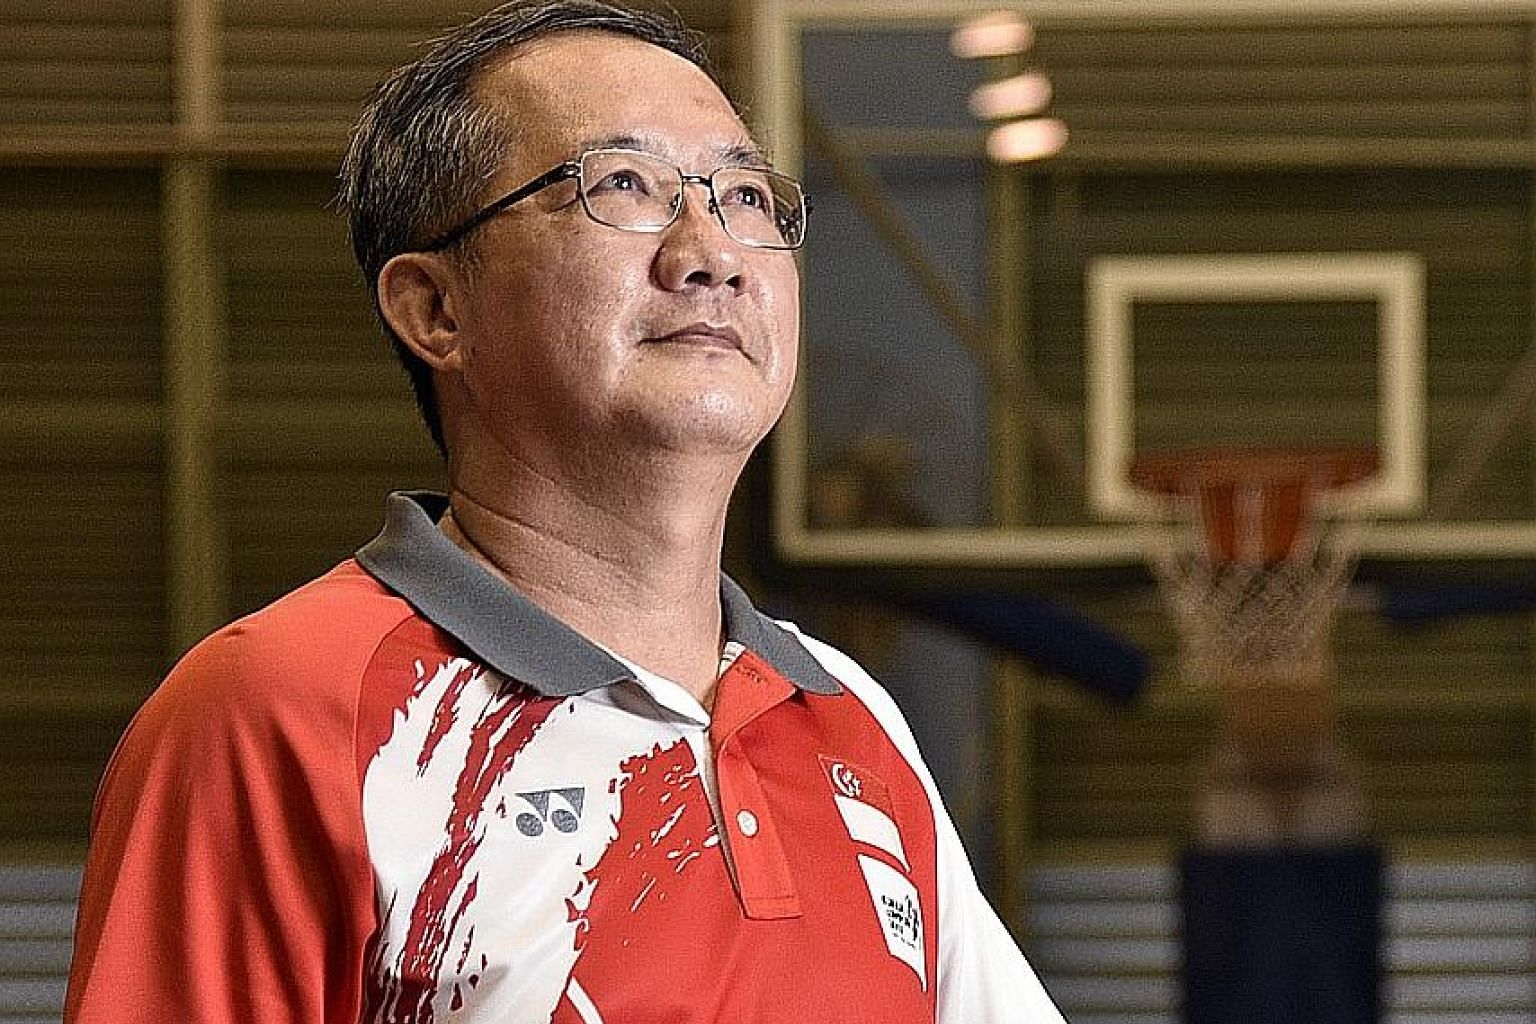 Neo Nam Kheng is upbeat about emerging talent in the Singapore basketball scene. The new national coach is eyeing a medal at next year's SEA Games in Vietnam. Singapore last earned one in 2015 at home.